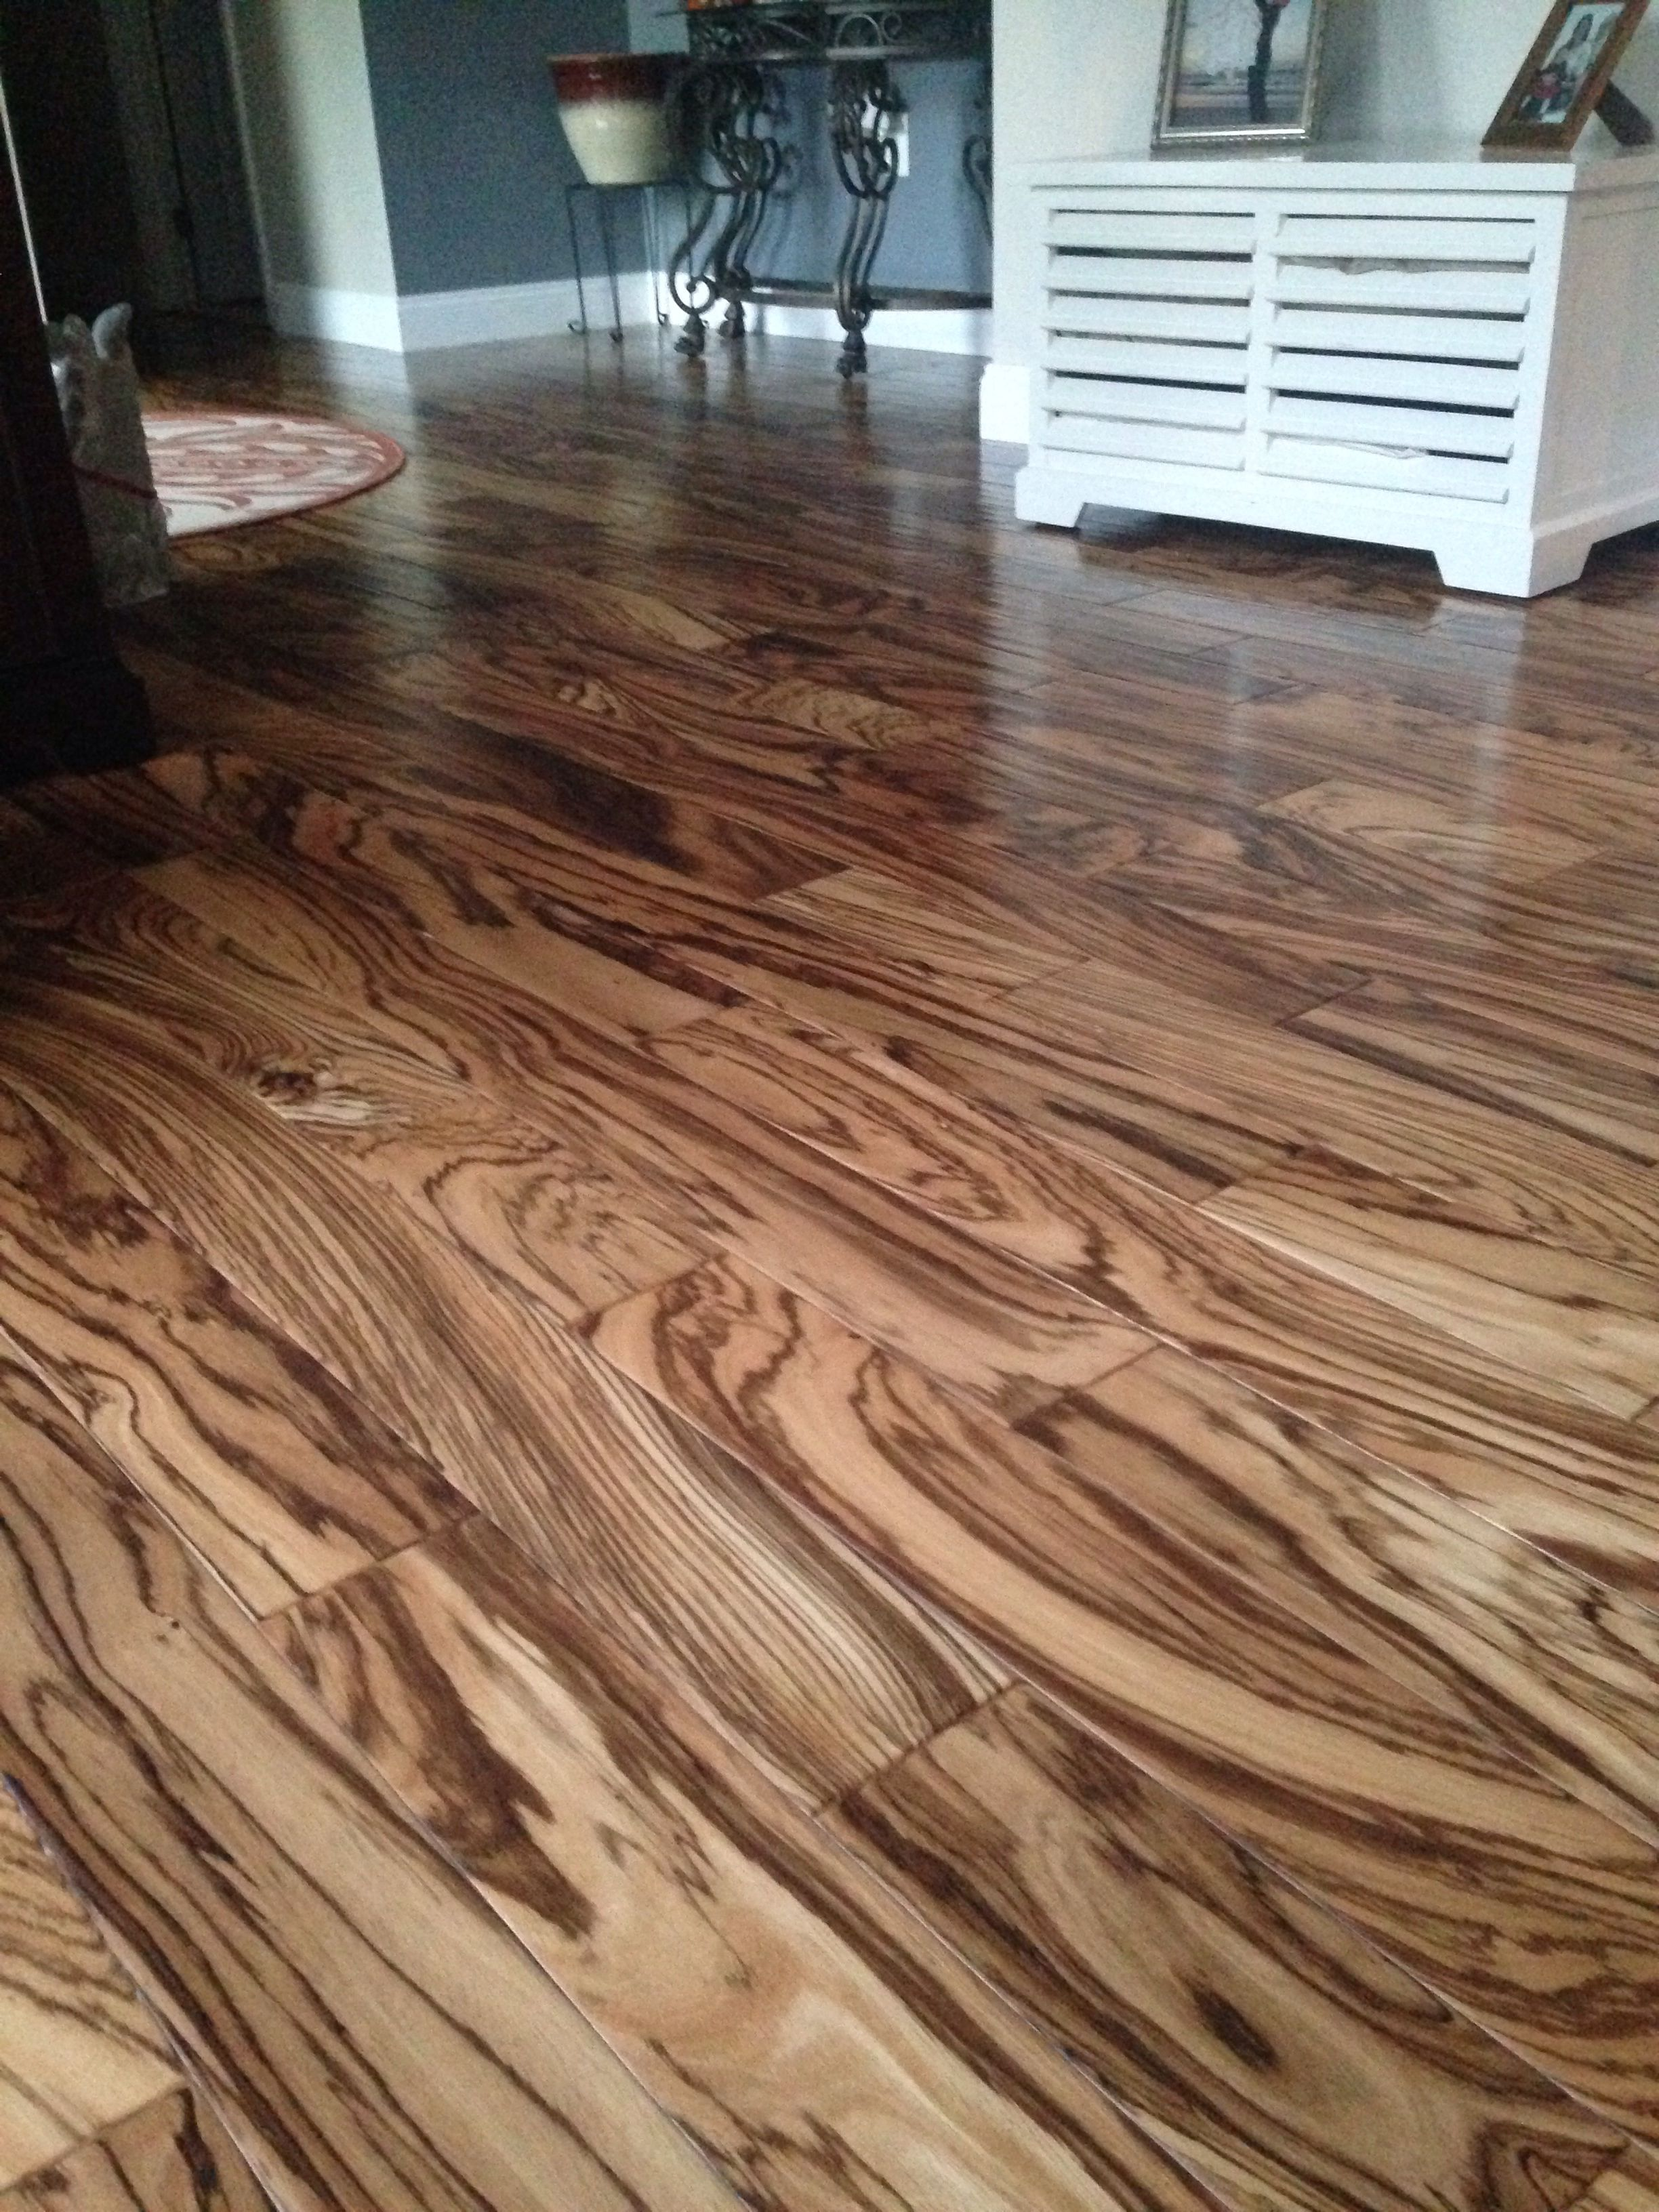 hardwood brazilian flooring floor hardness wood sale reviews pecn pecan rchive hickory pacific pcific wht